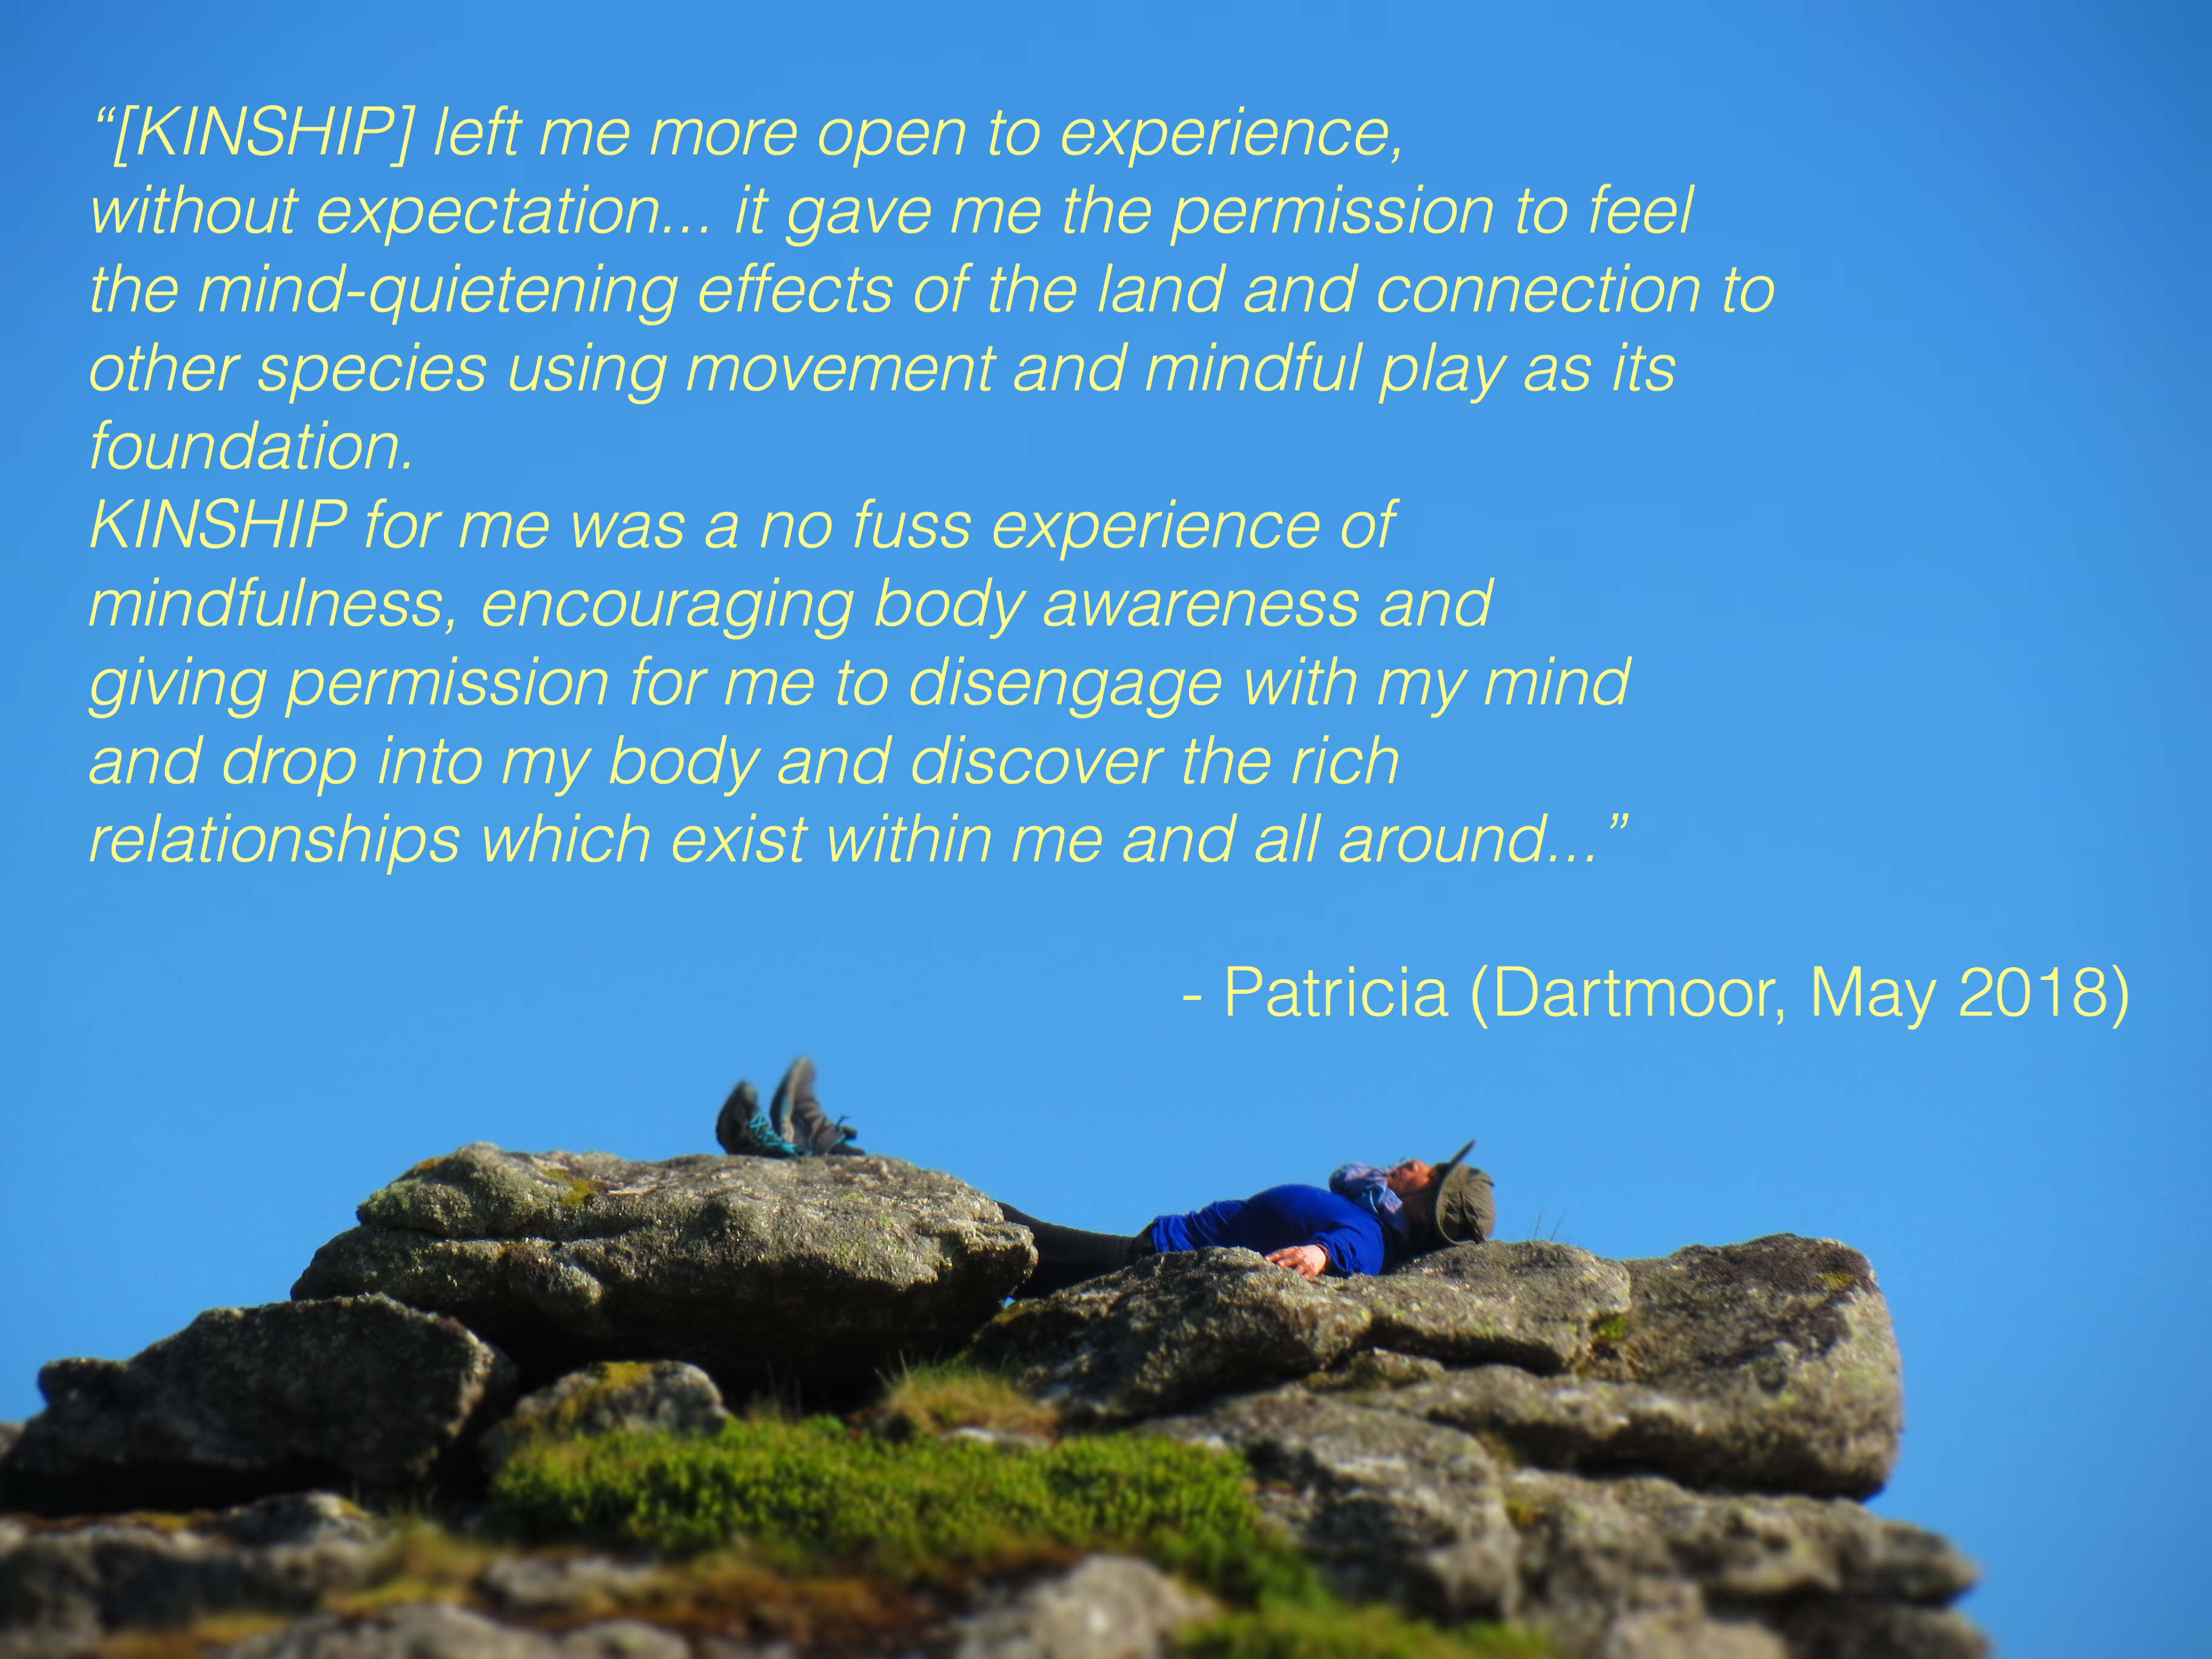 Participant Patricia's thoughts on Kinship Workshop